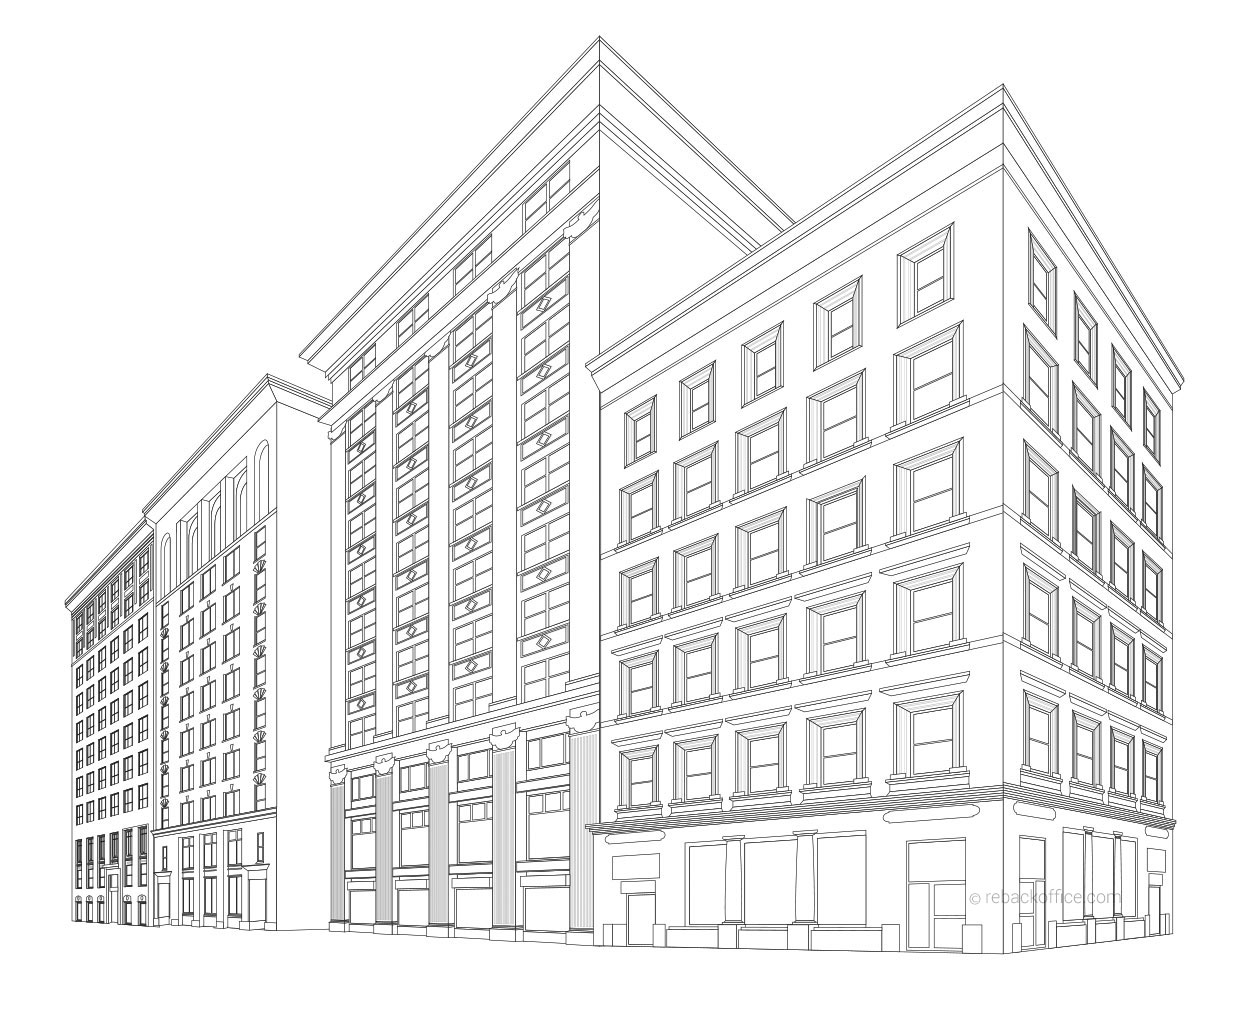 Rebackoffice Building Line Art